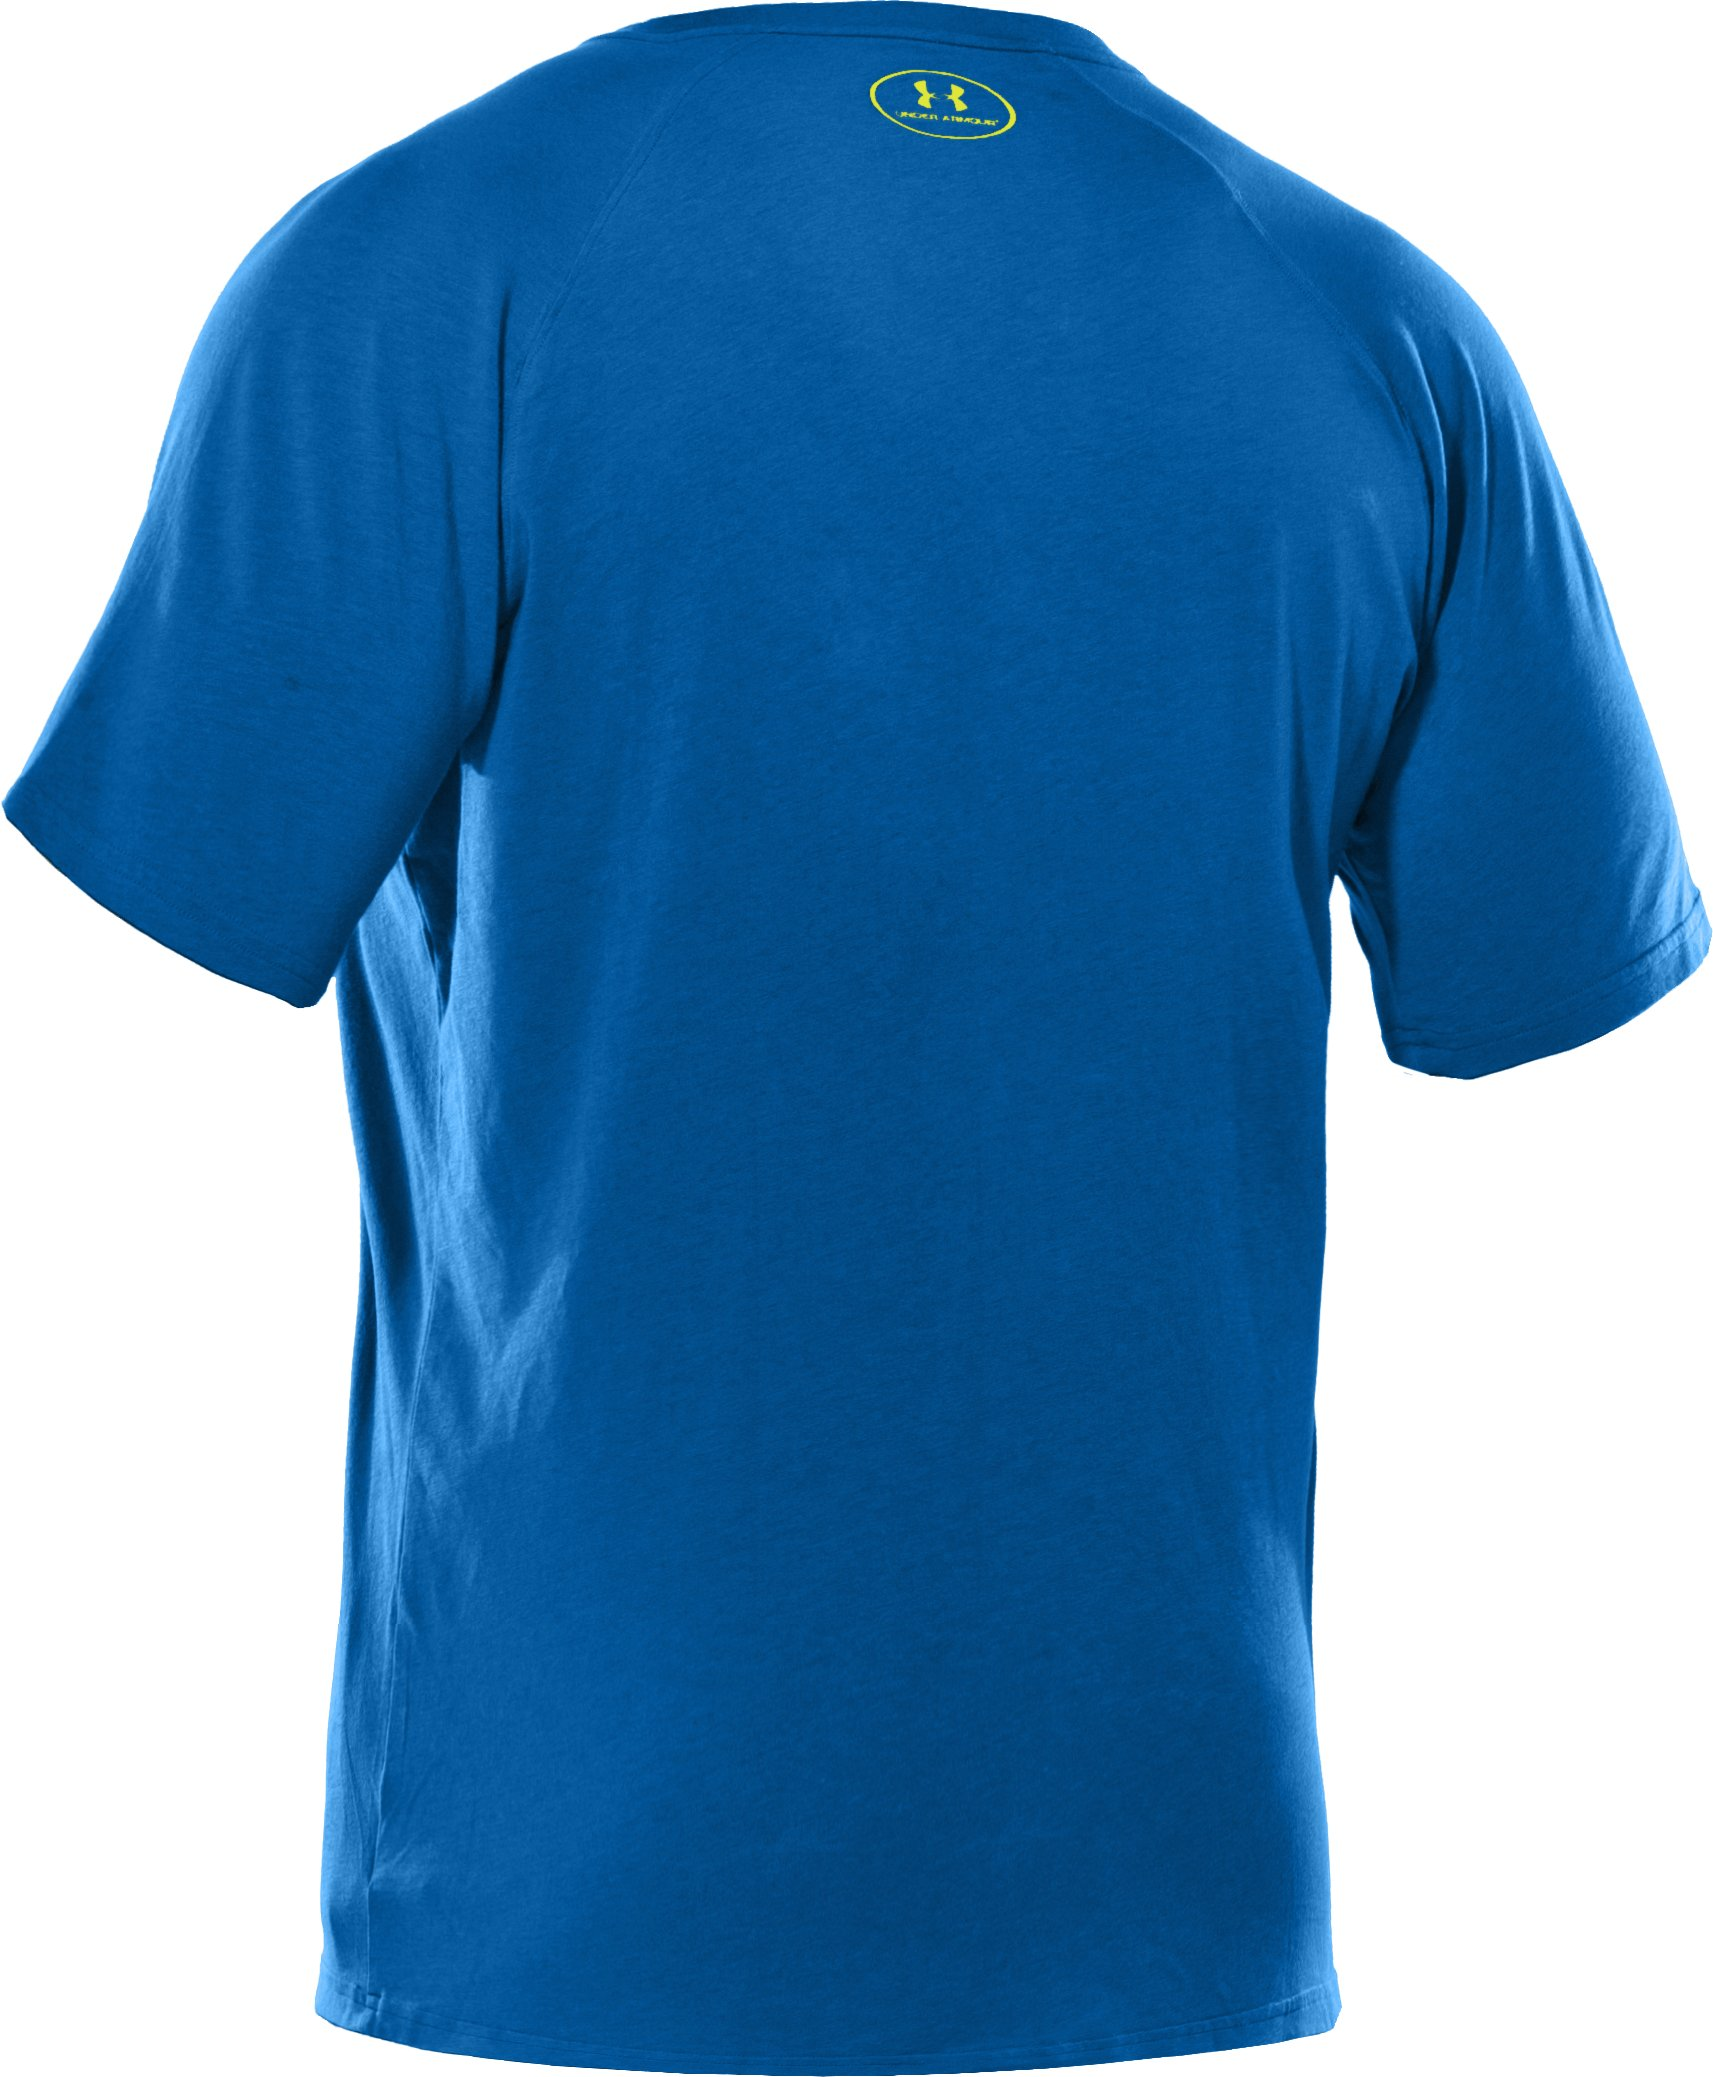 Men's Charged Cotton® V-Neck T-Shirt, SUPERIOR BLUE